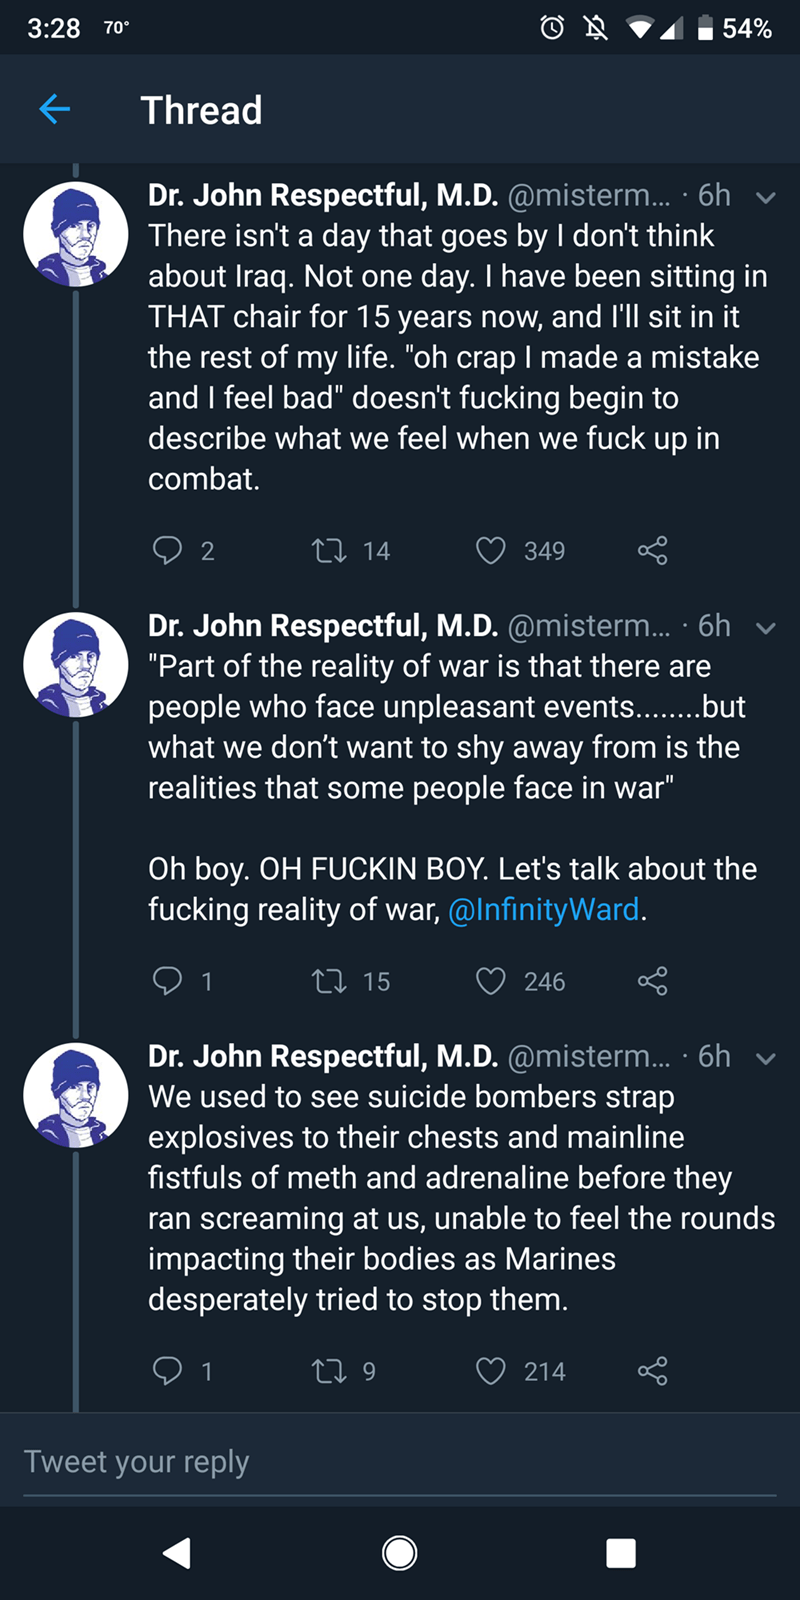 """realistic games - Text - 3:28 54% 70% Thread Dr. John Respectful, M.D. @misterm... 6h There isn't a day that goes by I don't think about Iraq. Not one day. I have been sitting in THAT chair for 15 years now, and I'll sit in it the rest of my life. """"oh crapl made a mistake and I feel bad"""" doesn't fucking begin to describe what we feel when we fuck up in combat. 2 LI 14 349 Dr. John Respectful, M.D. @misterm... .6h """"Part of the reality of war is that there are people who face unpleasant events..."""